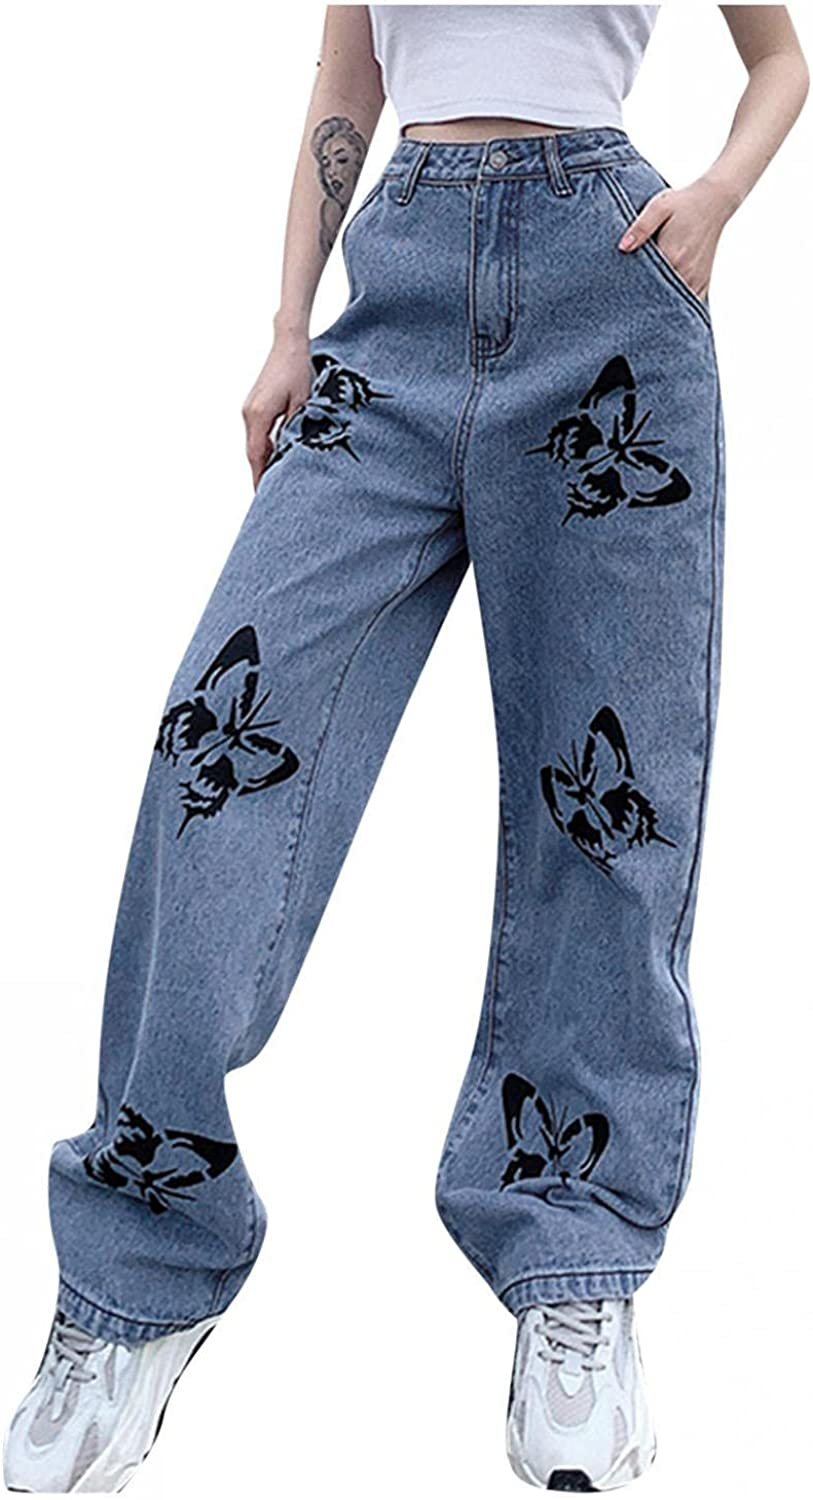 Fudule Fashion Y2K Jeans for Women High Waisted Jeans Vintage Butterfly Printed Denim Pants Casual Wide Leg Baggy Jeans